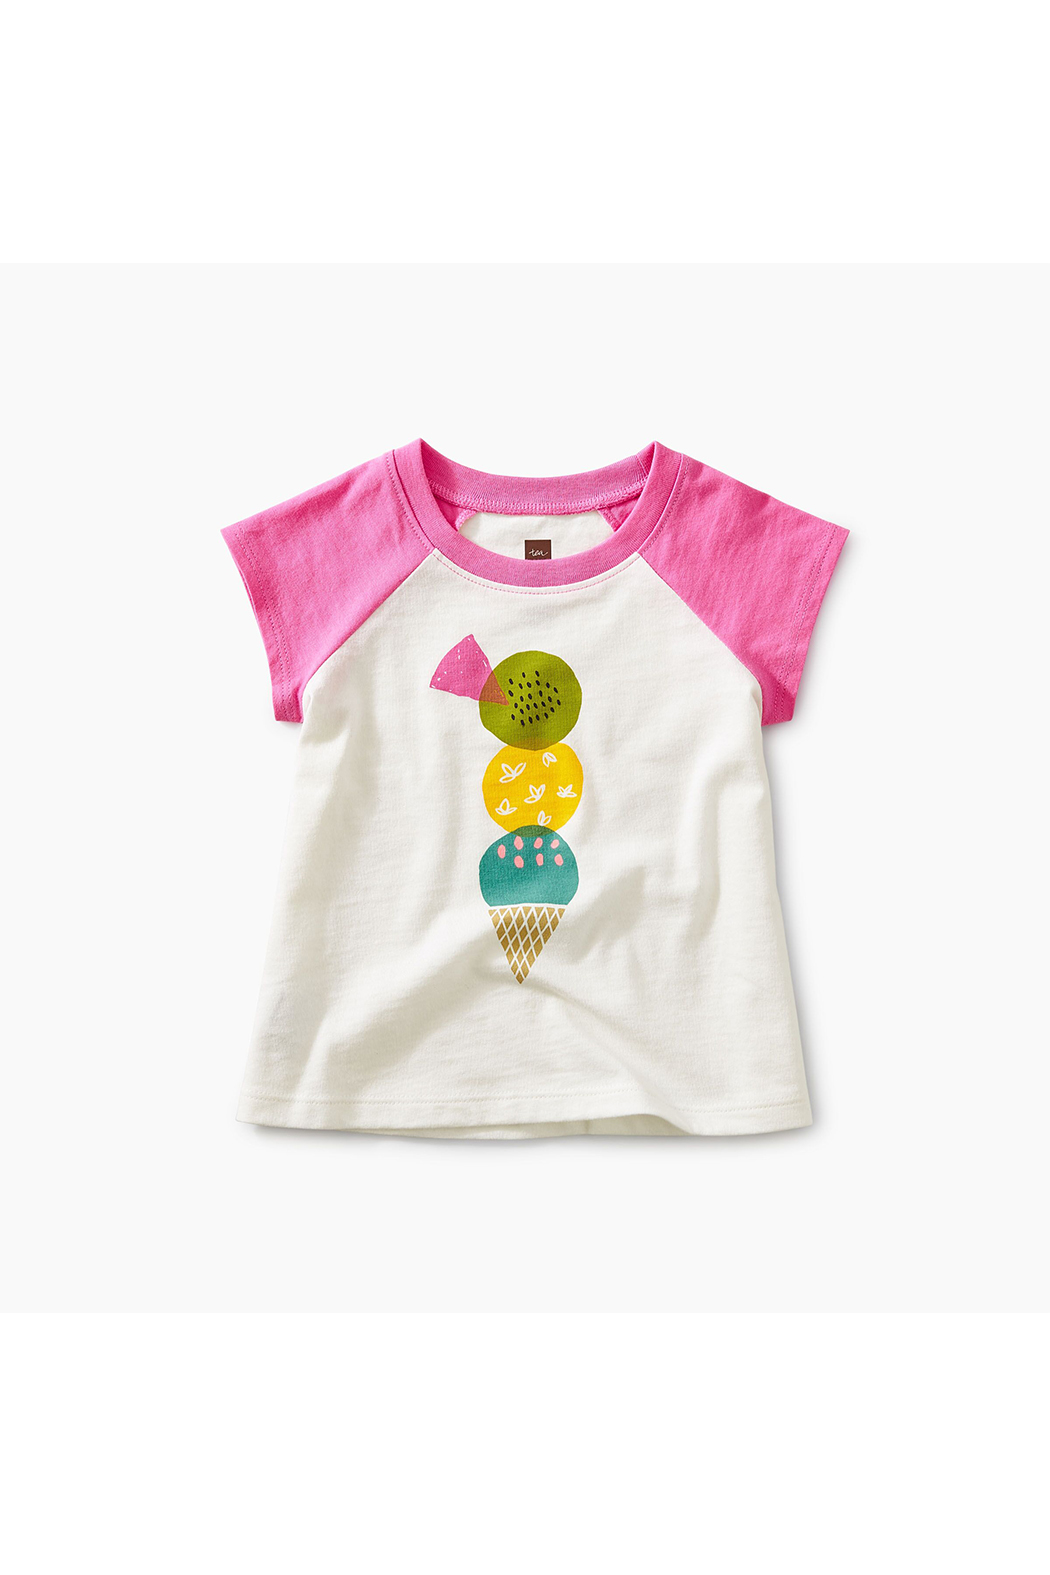 Tea Collection Triple Treat Baby Graphic Tee - Main Image